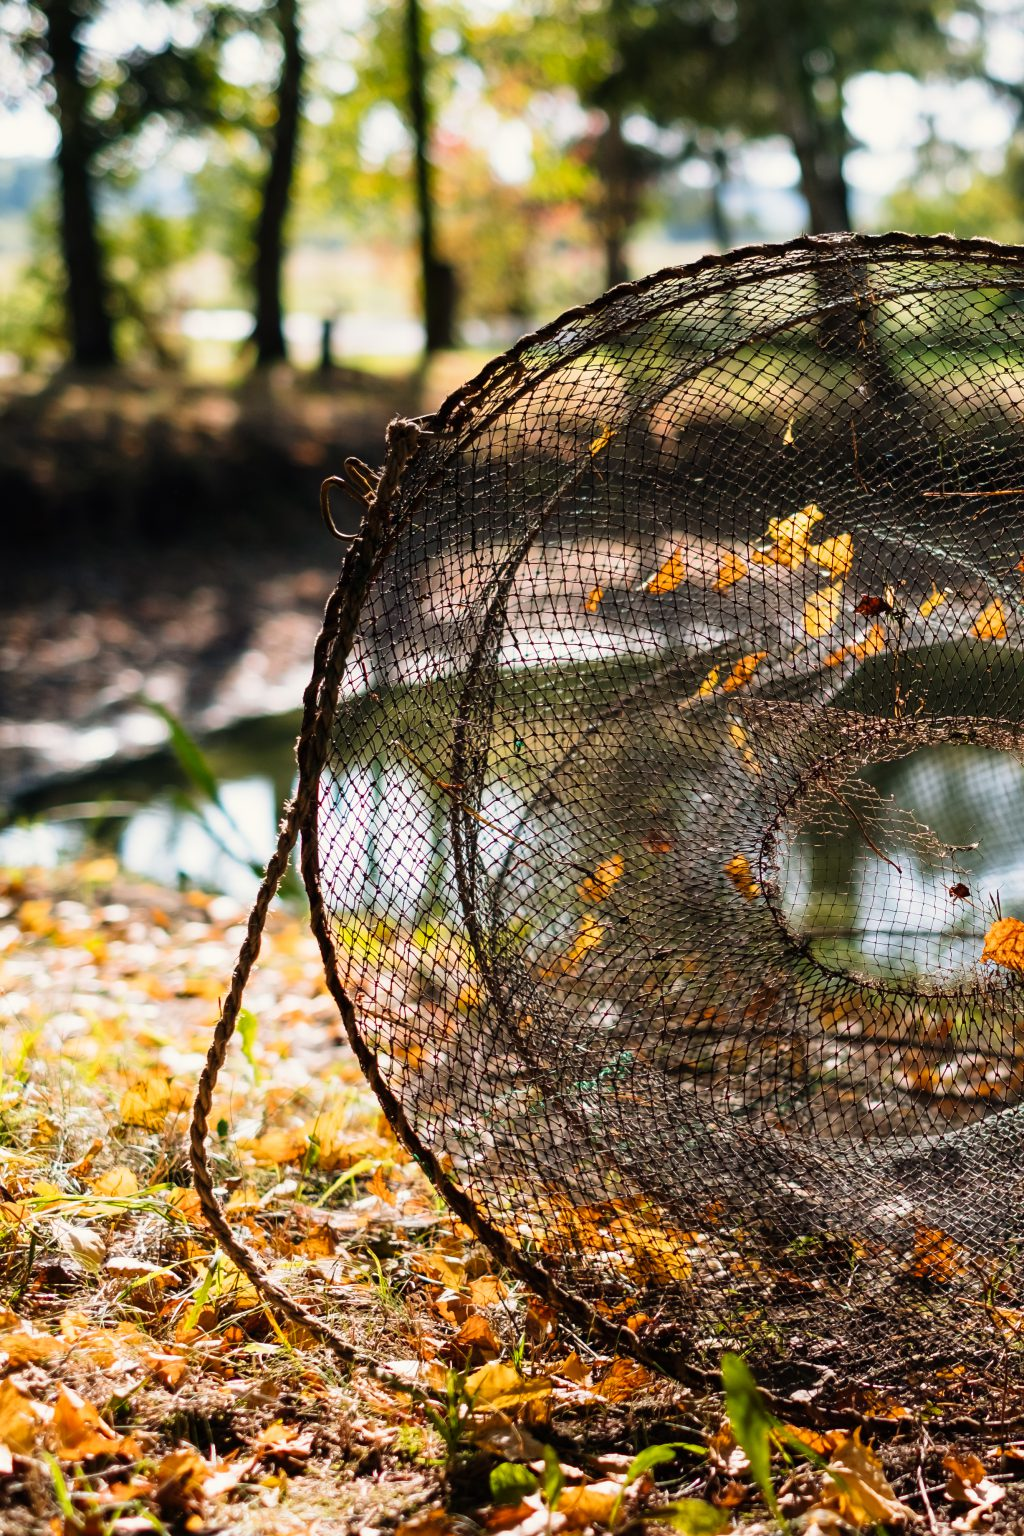 Fish net at the pond 2 - free stock photo